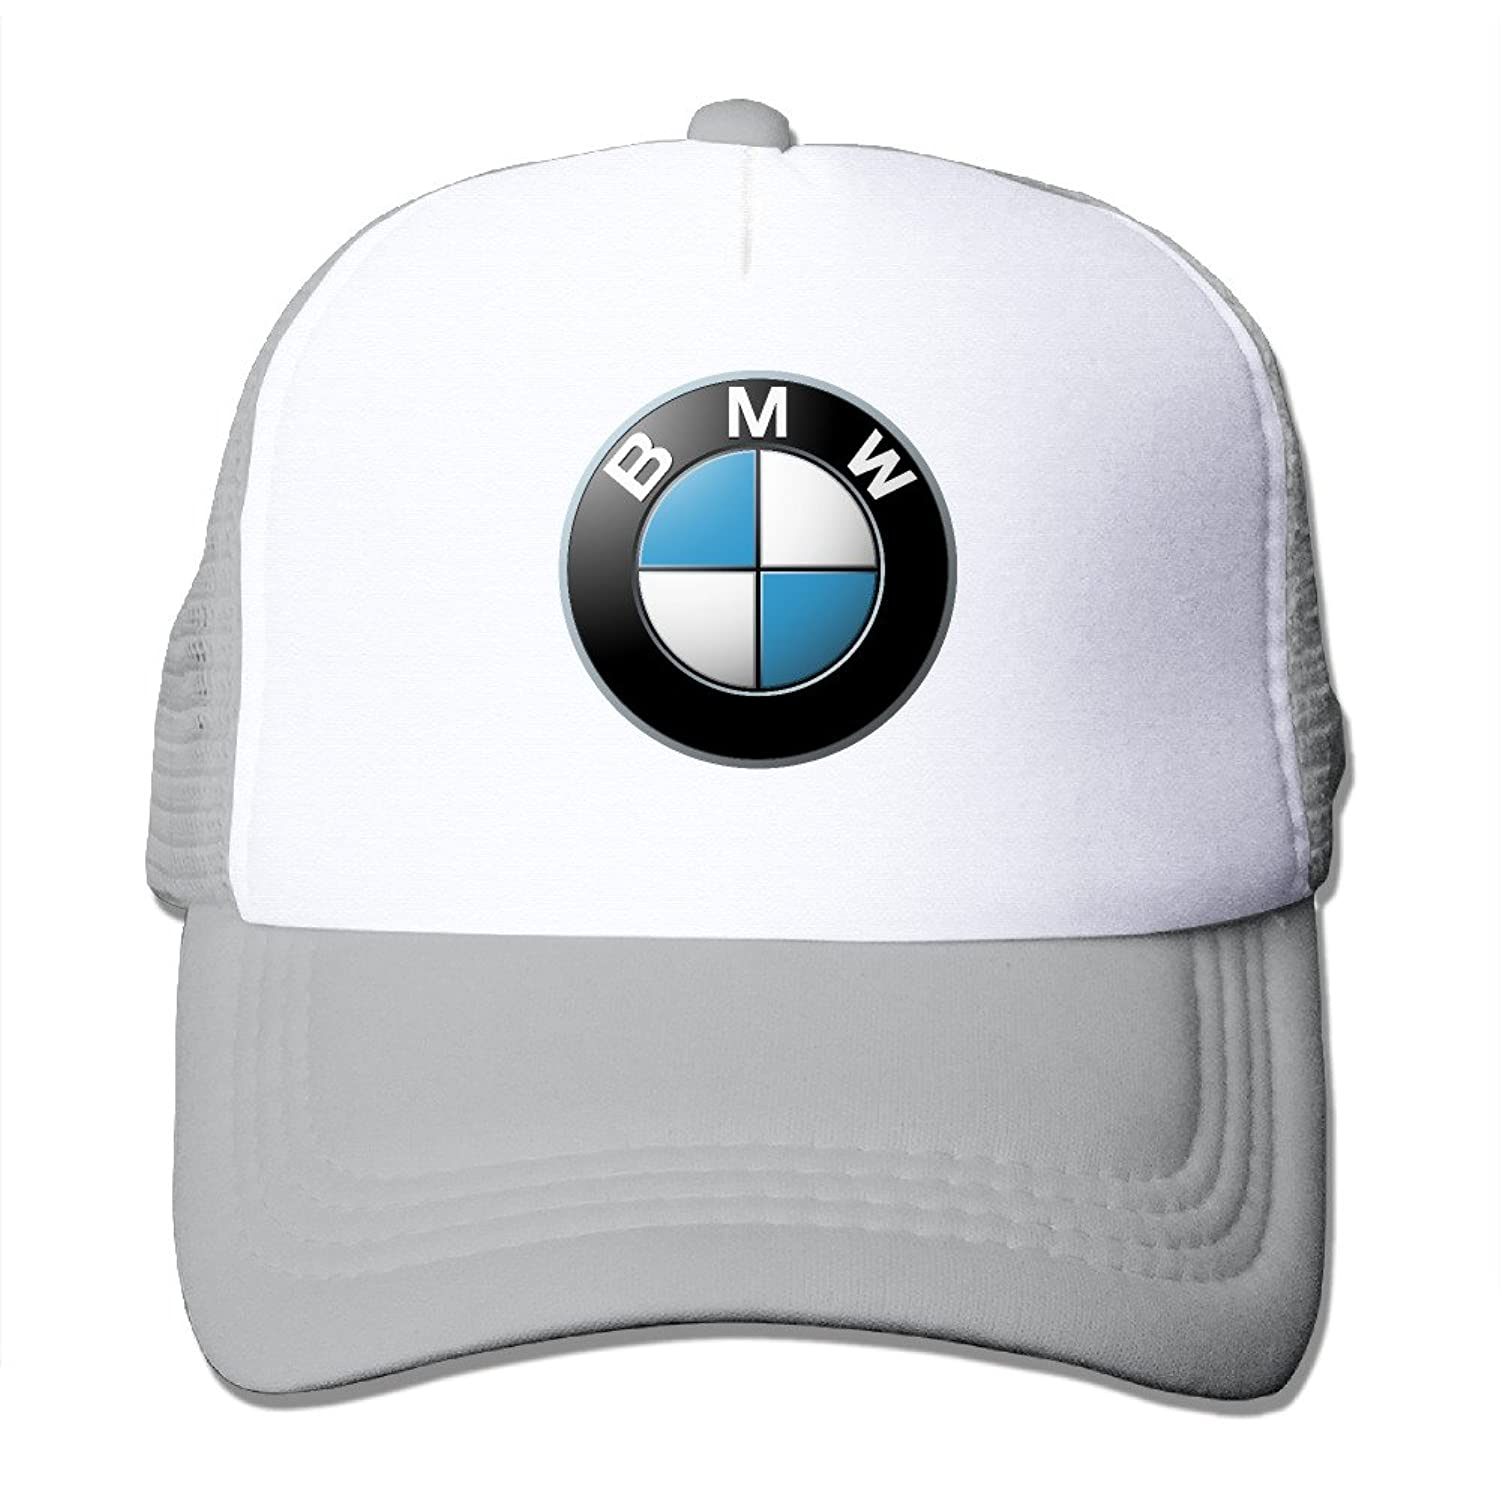 WuliNN BMW Mesh Trucker Hat Outdoor Adjustable Baseball Cap For Unisex